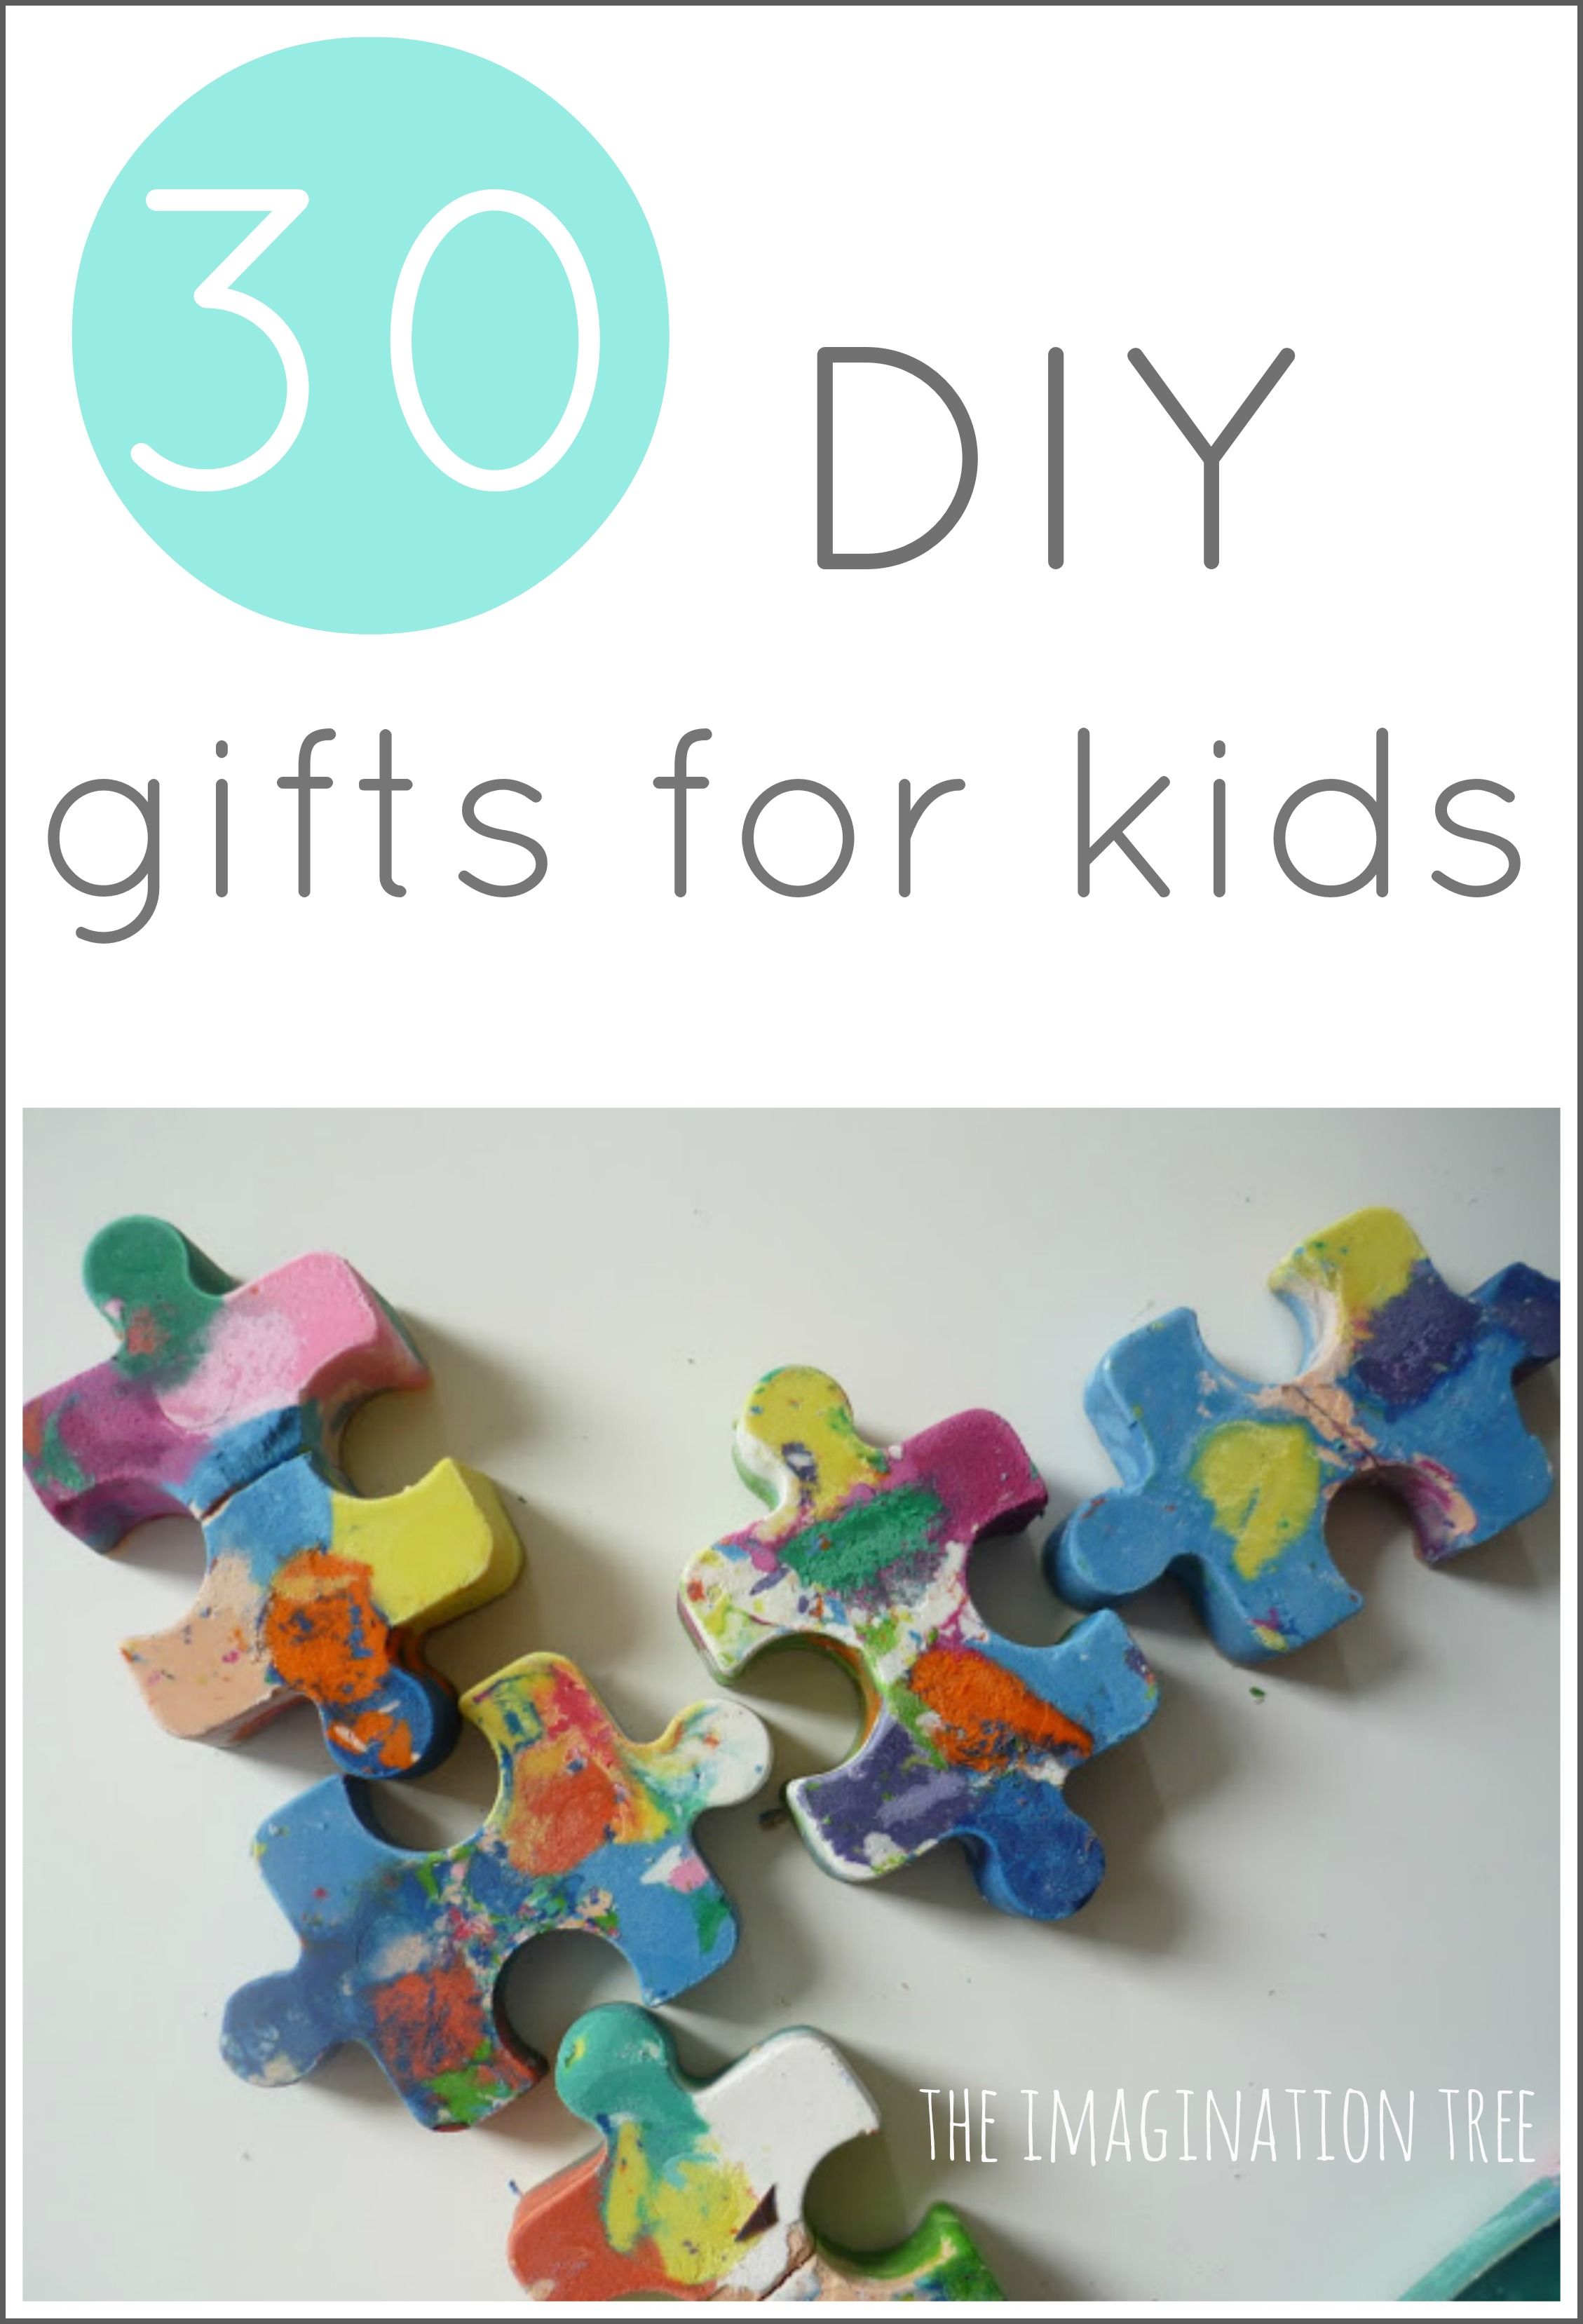 30 diy gifts to make for kids the imagination tree 30 diy gifts to make for kids solutioingenieria Images